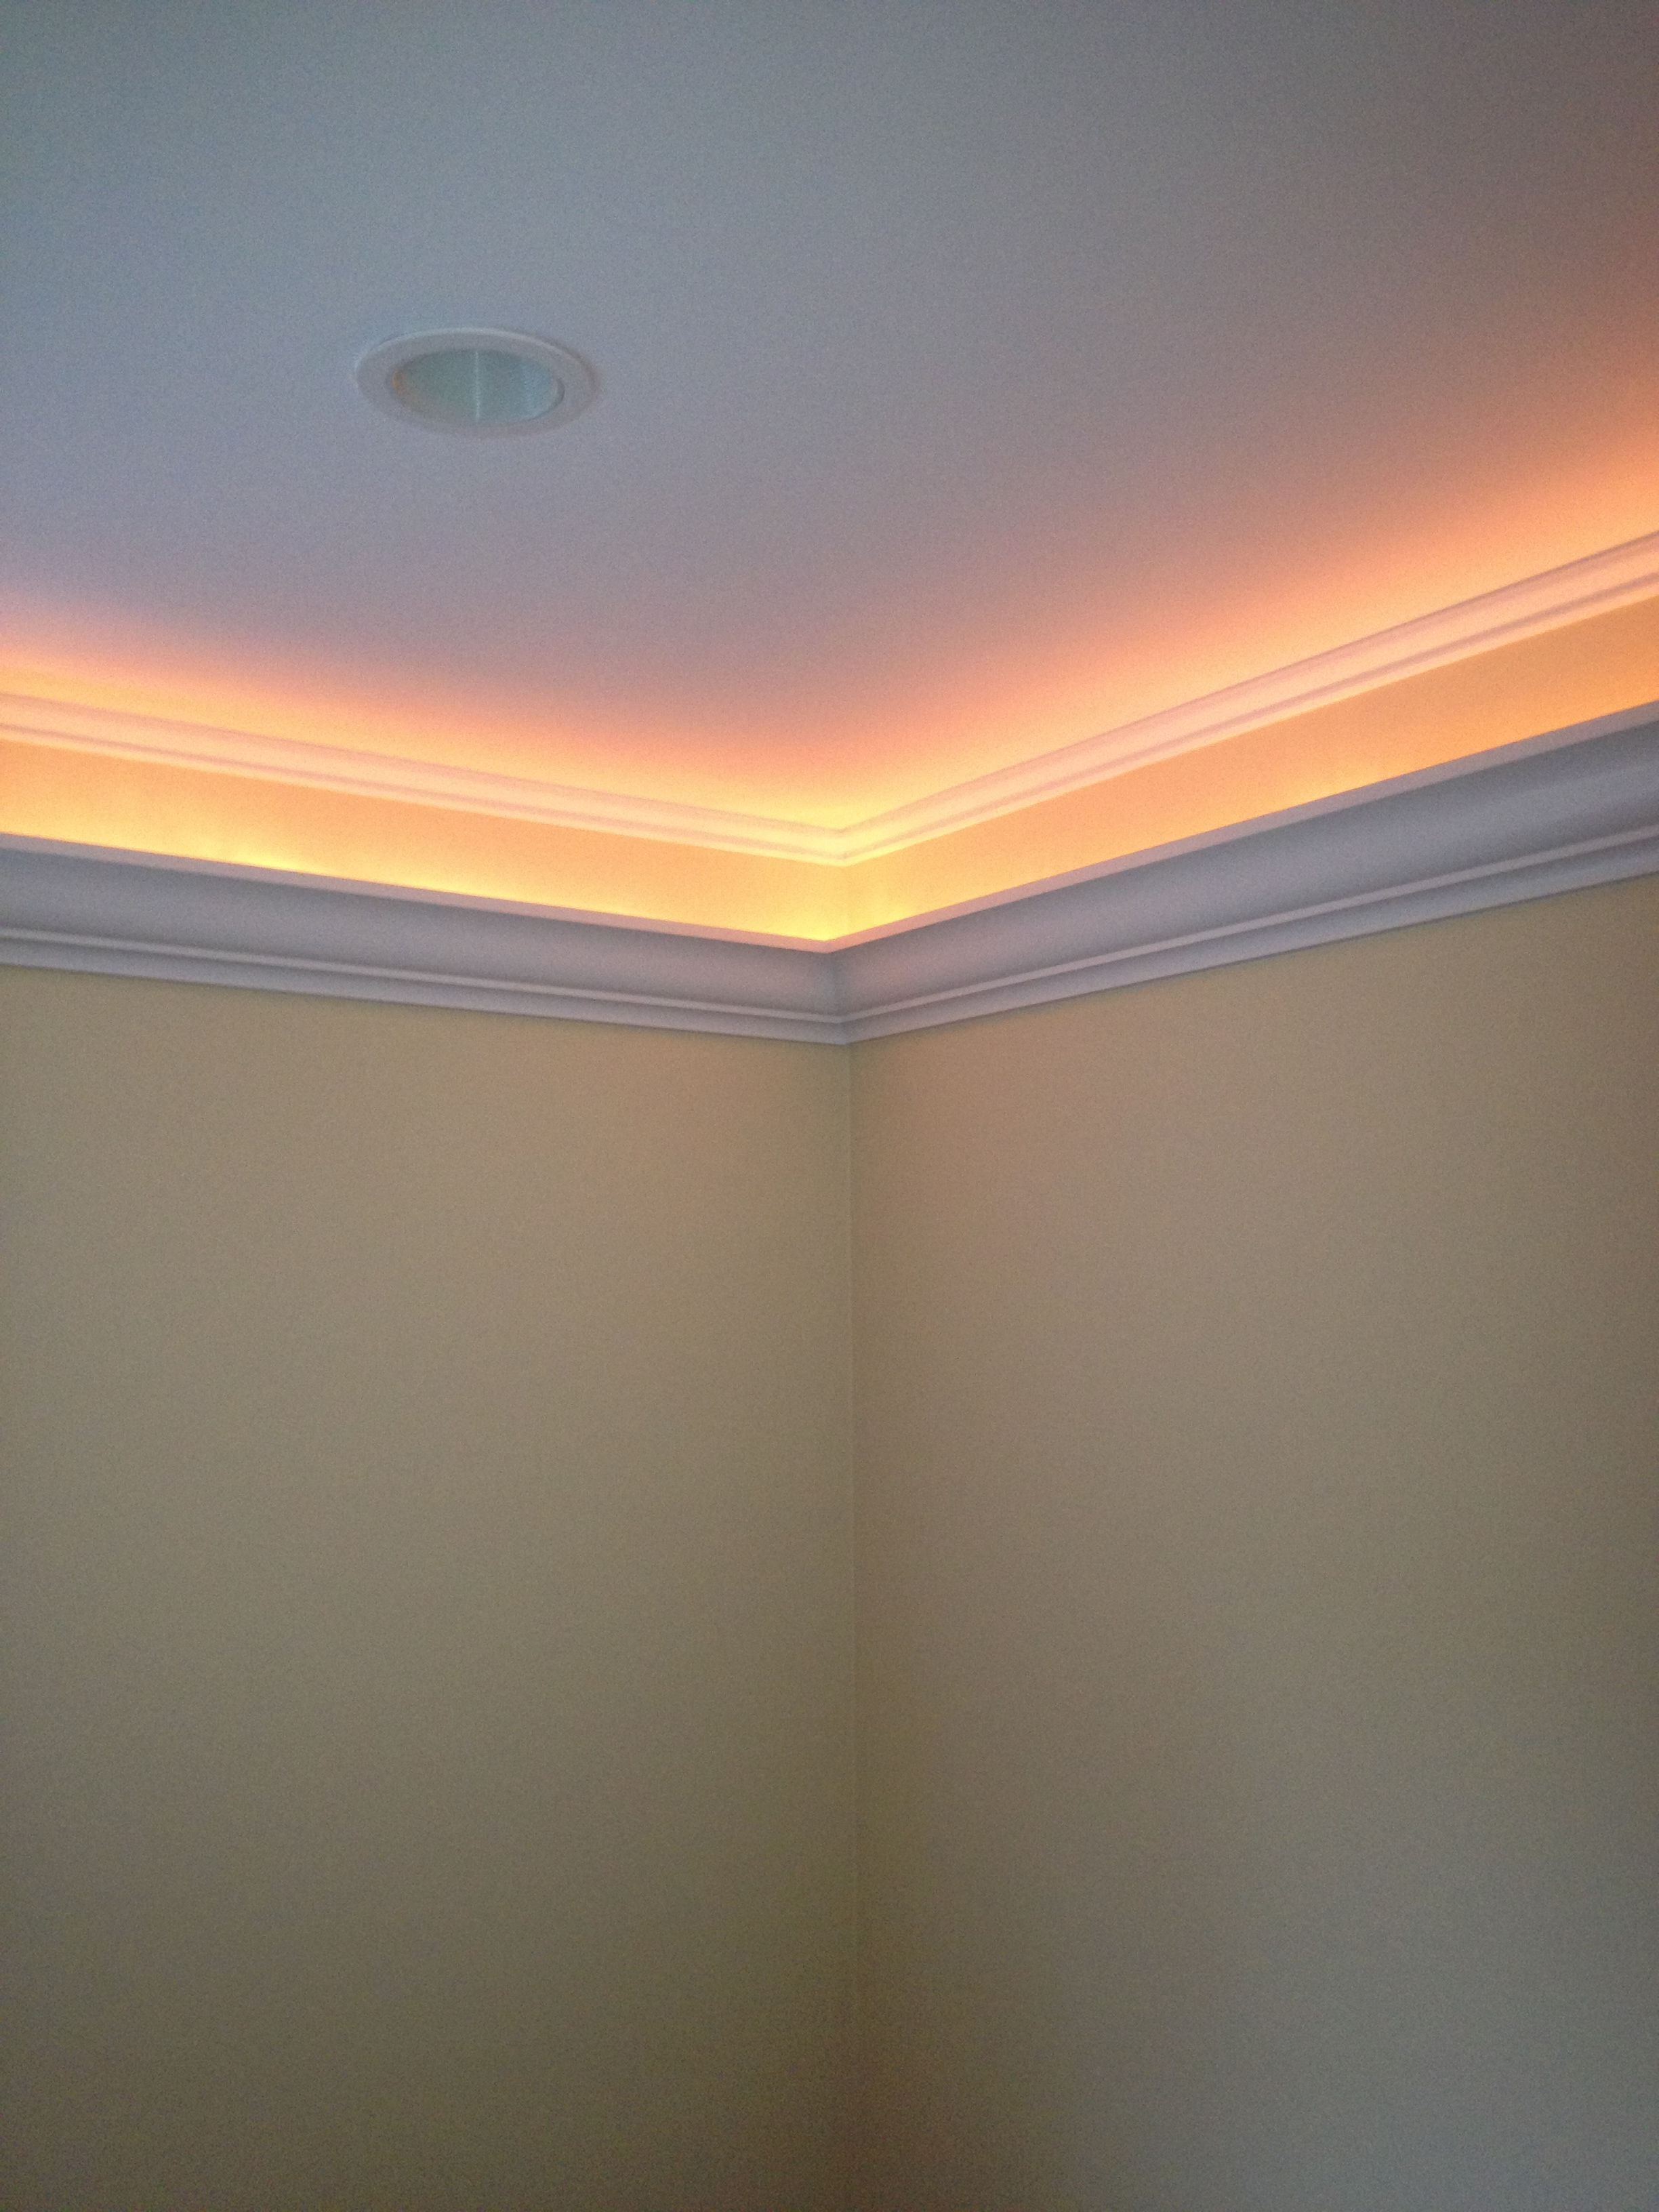 Crown Molding 6 Inches Down Hides A Rope Light Www Brianbbrendle Com Crown Molding Lights Cove Lighting Bedroom Lighting